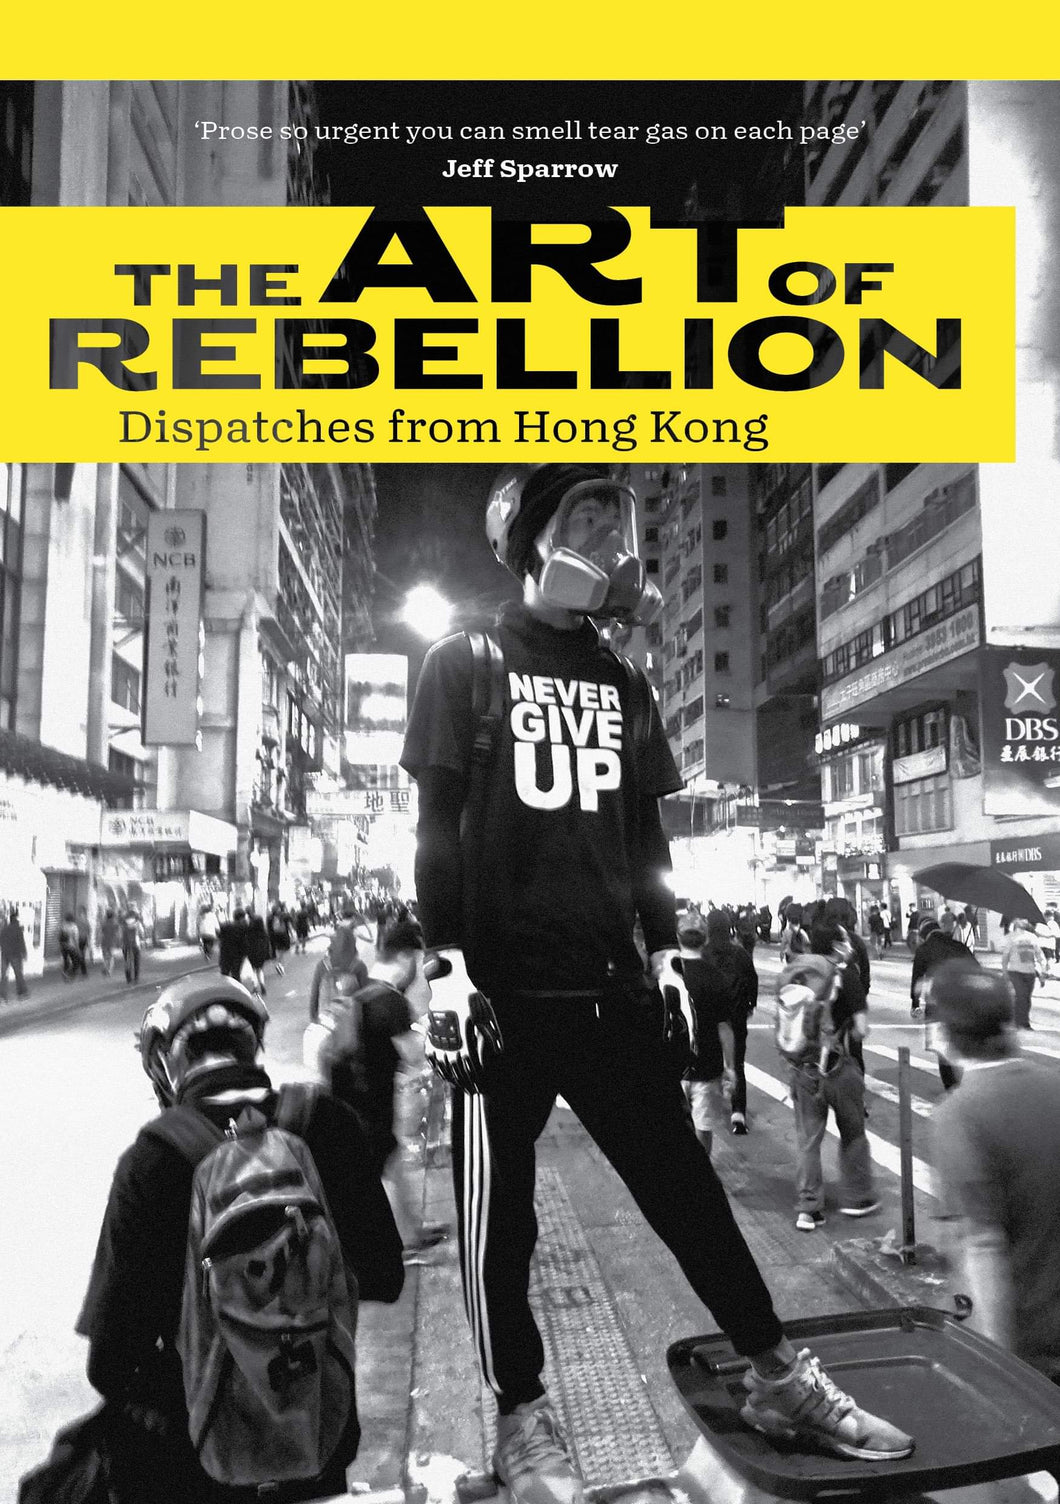 The Art of Rebellion: Dispatches from Hong Kong